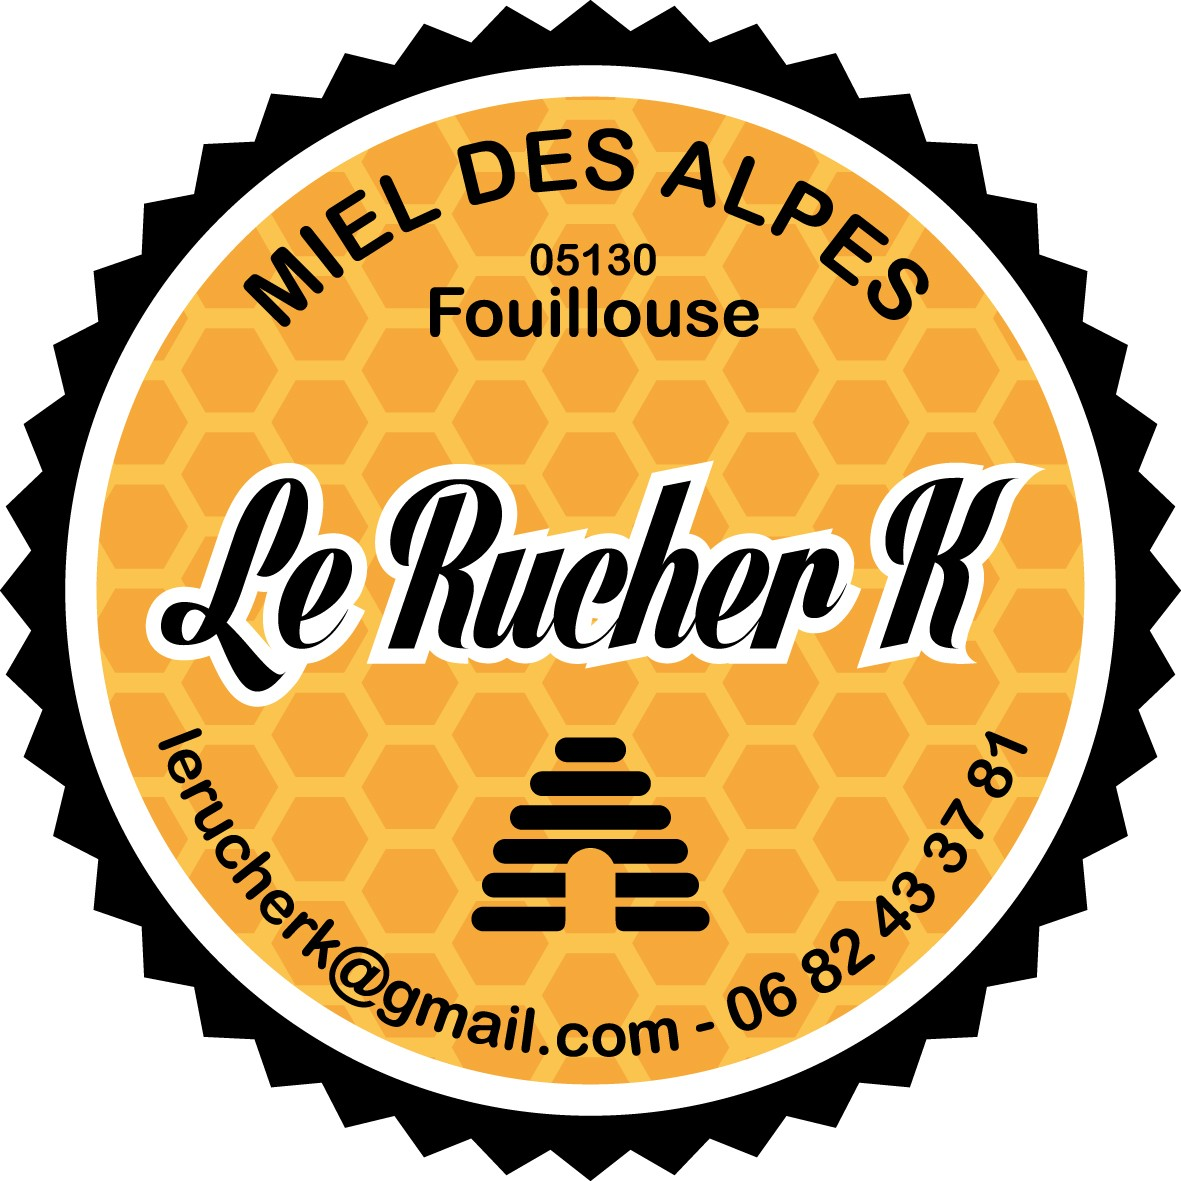 Photo de l'entreprise : Le Rucher K